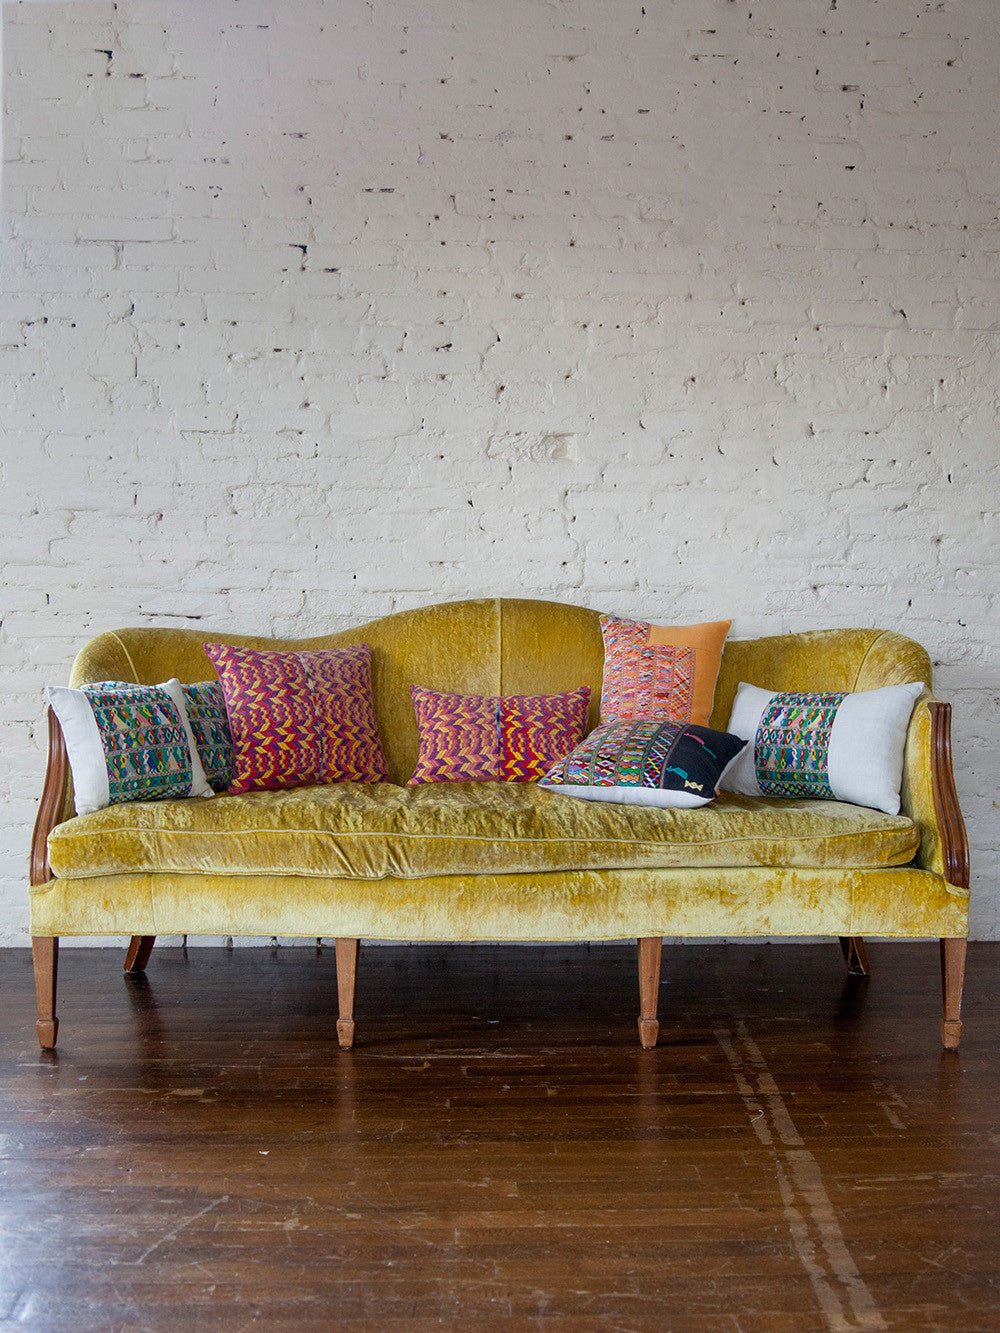 Vintage Woven Throw Pillows